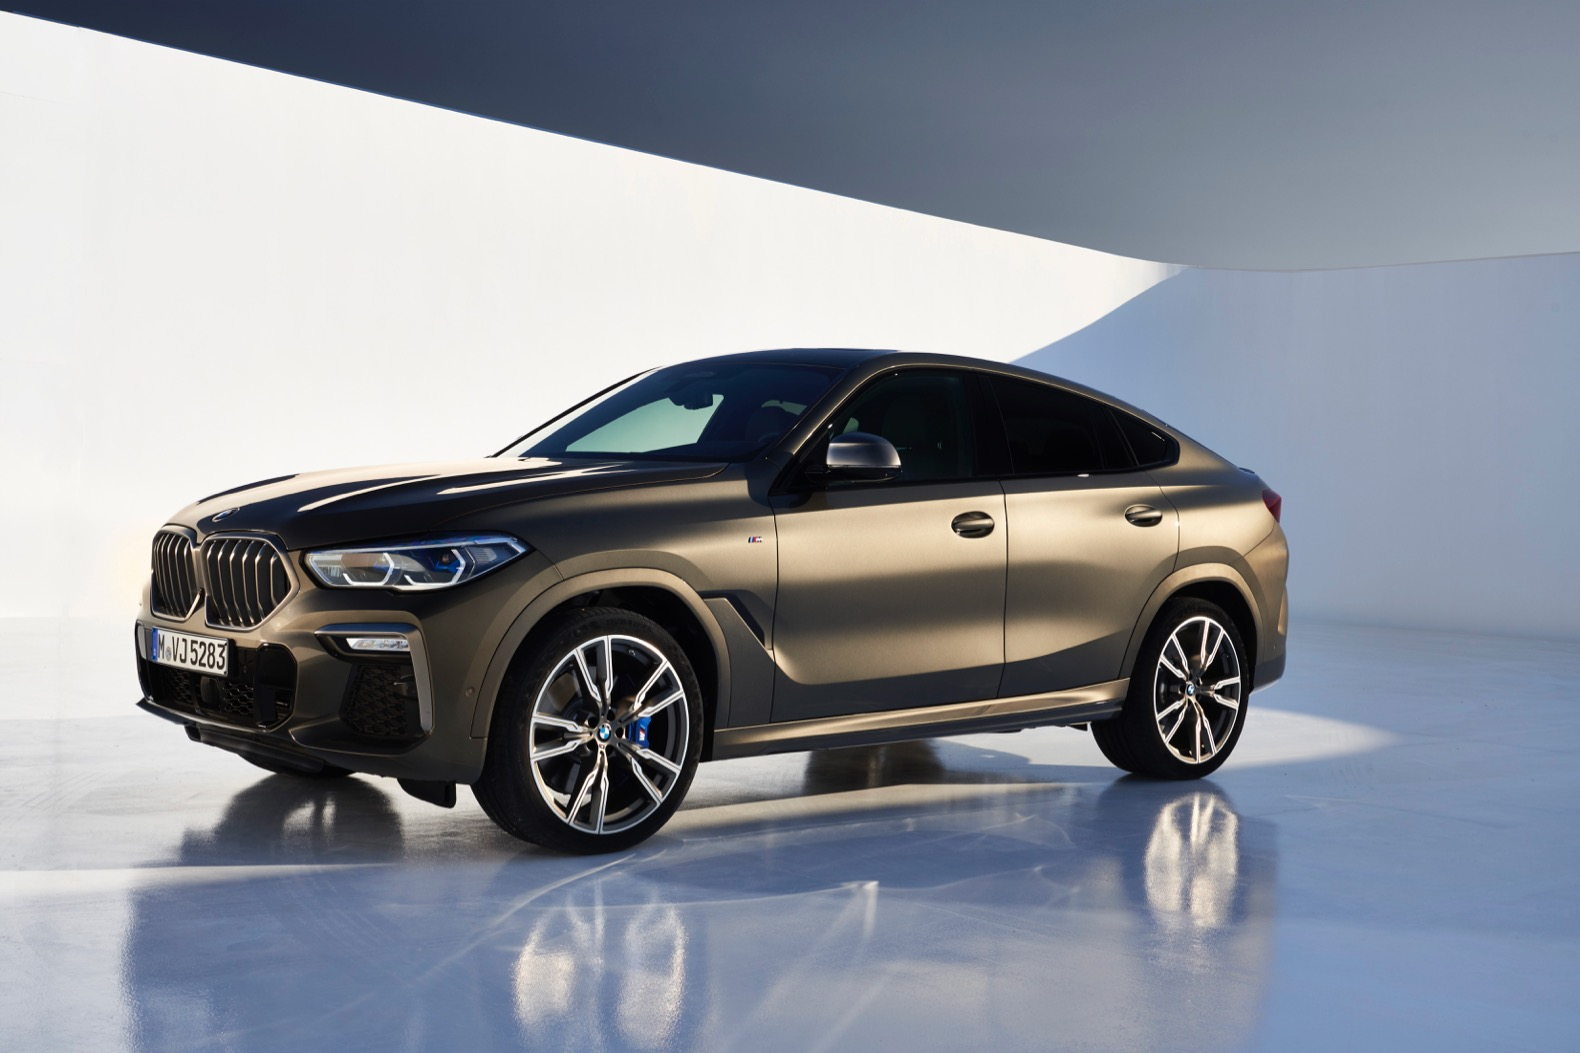 Bmw X6 0 60 Upcoming New Car Release 2020